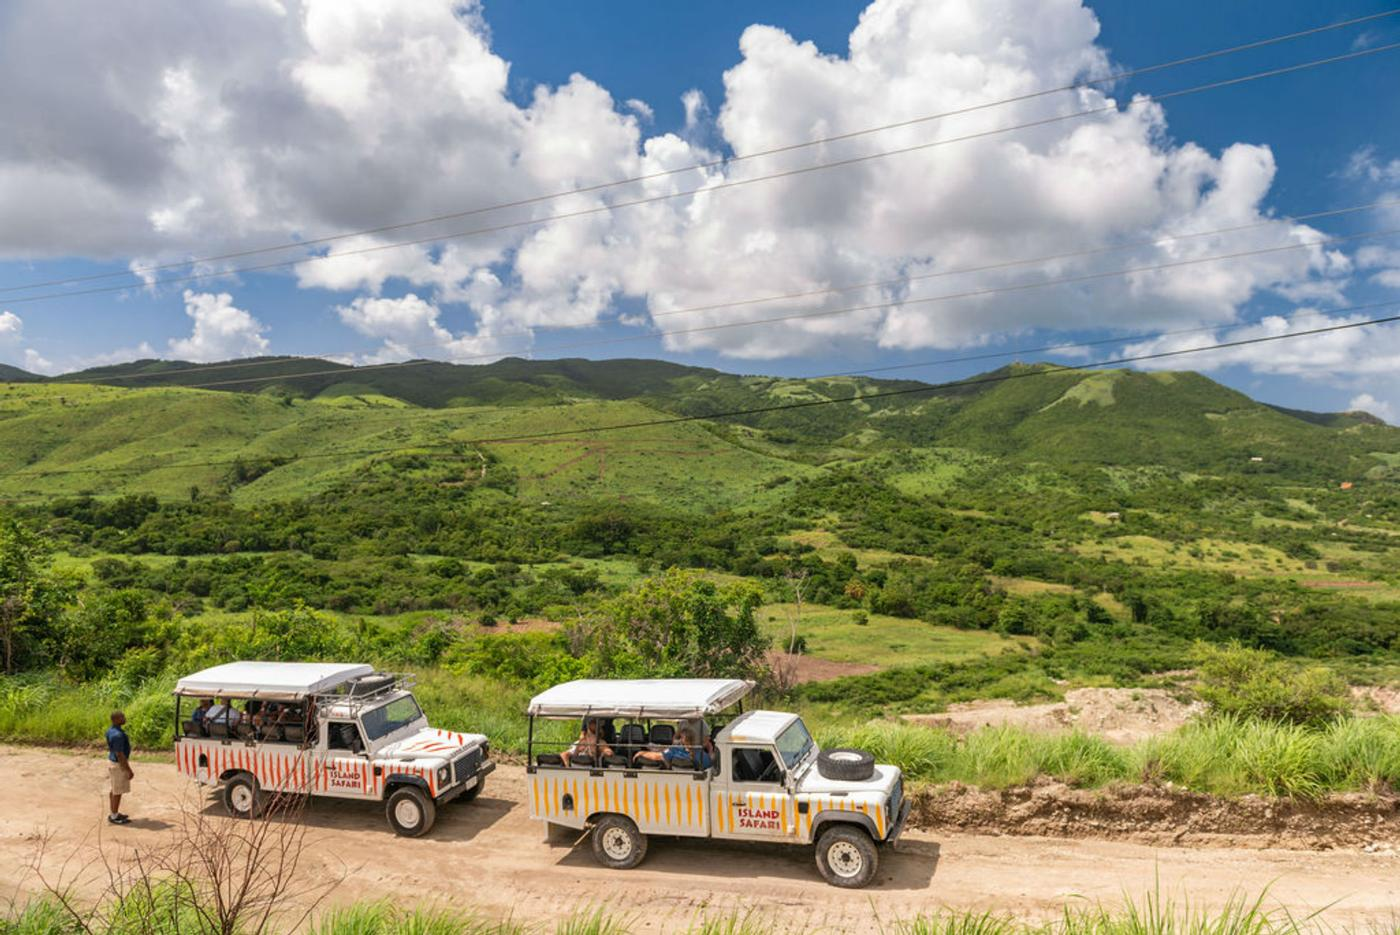 safari land rovers making their ways through the island sites